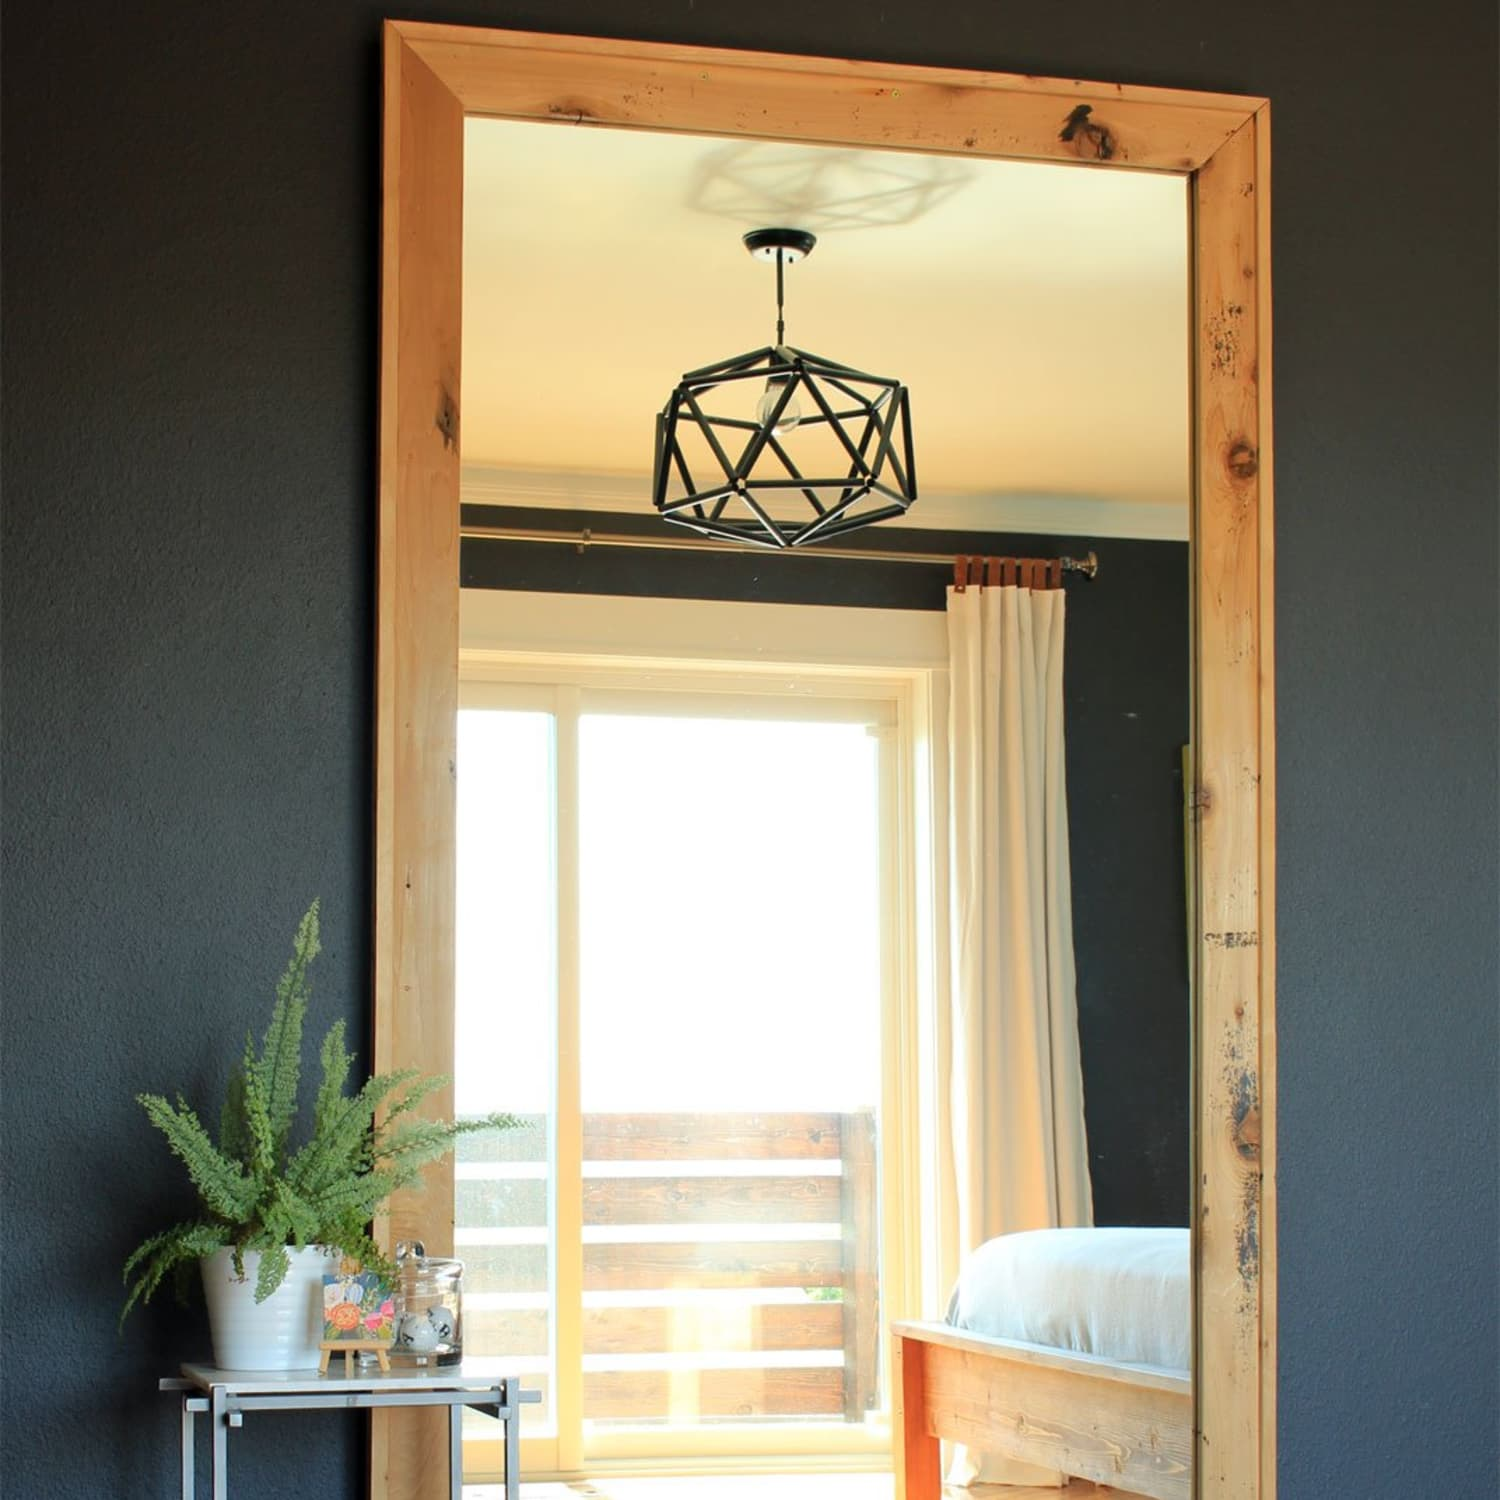 Diy Leaning Framed Floor Mirror Apartment Therapy